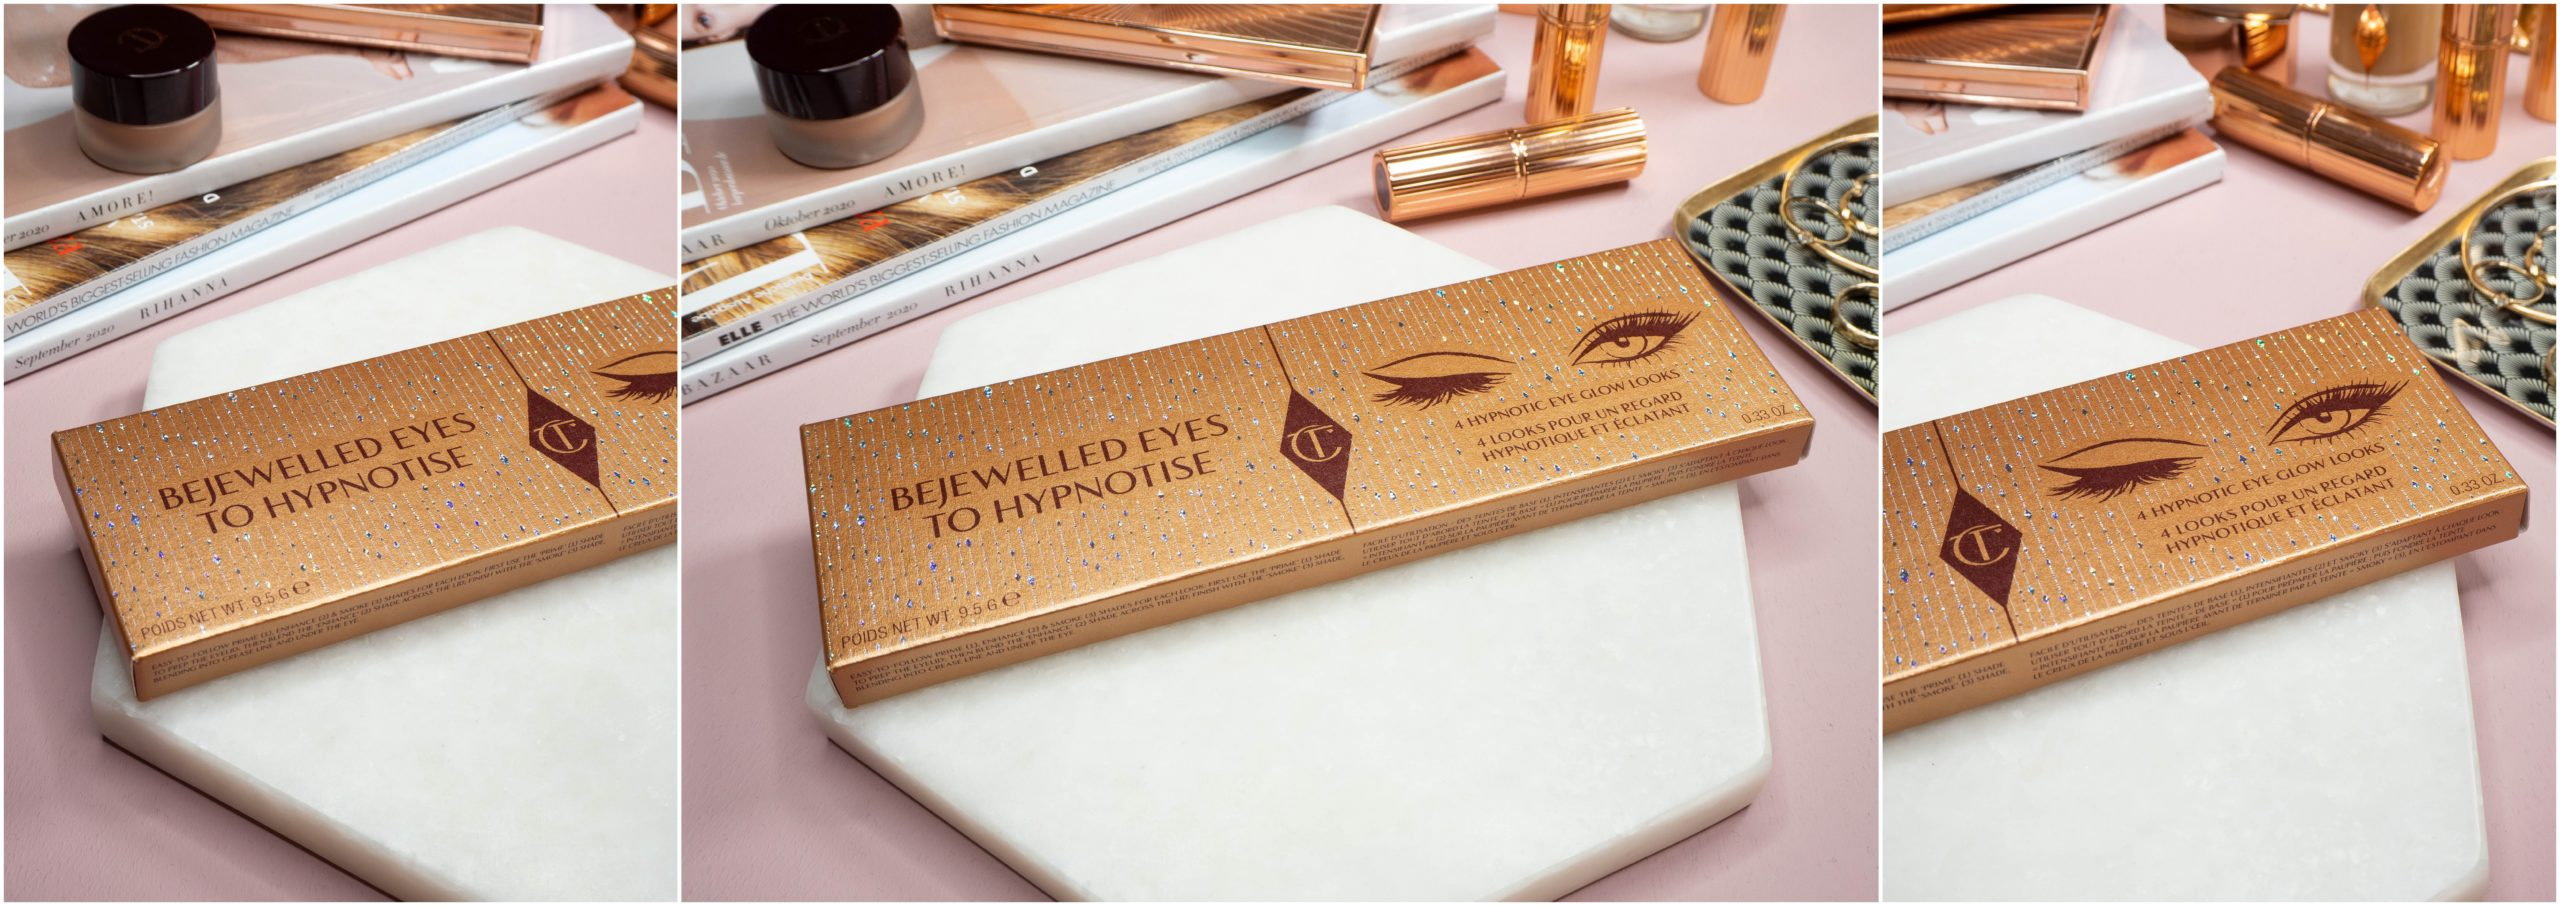 Charlotte Tilbury Bejewelled Eyes to Hypnotise Design